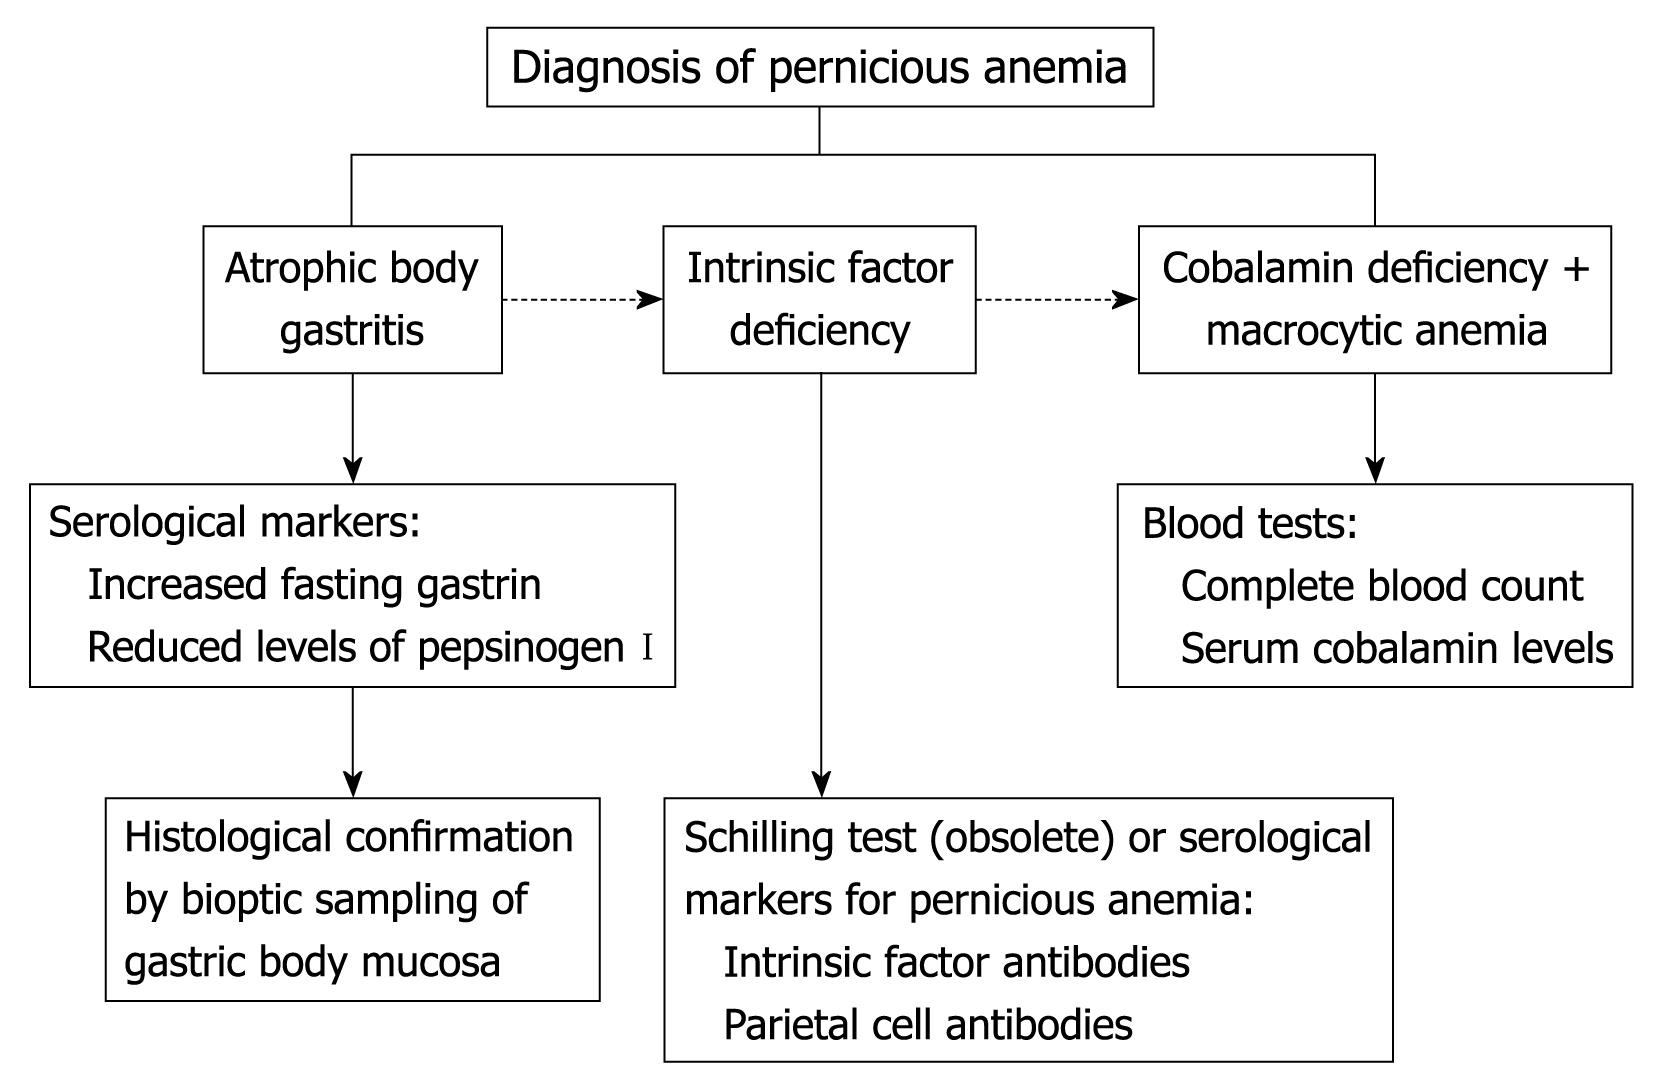 Anemia. What are the consequences of severe anemia and how does it end if left untreated